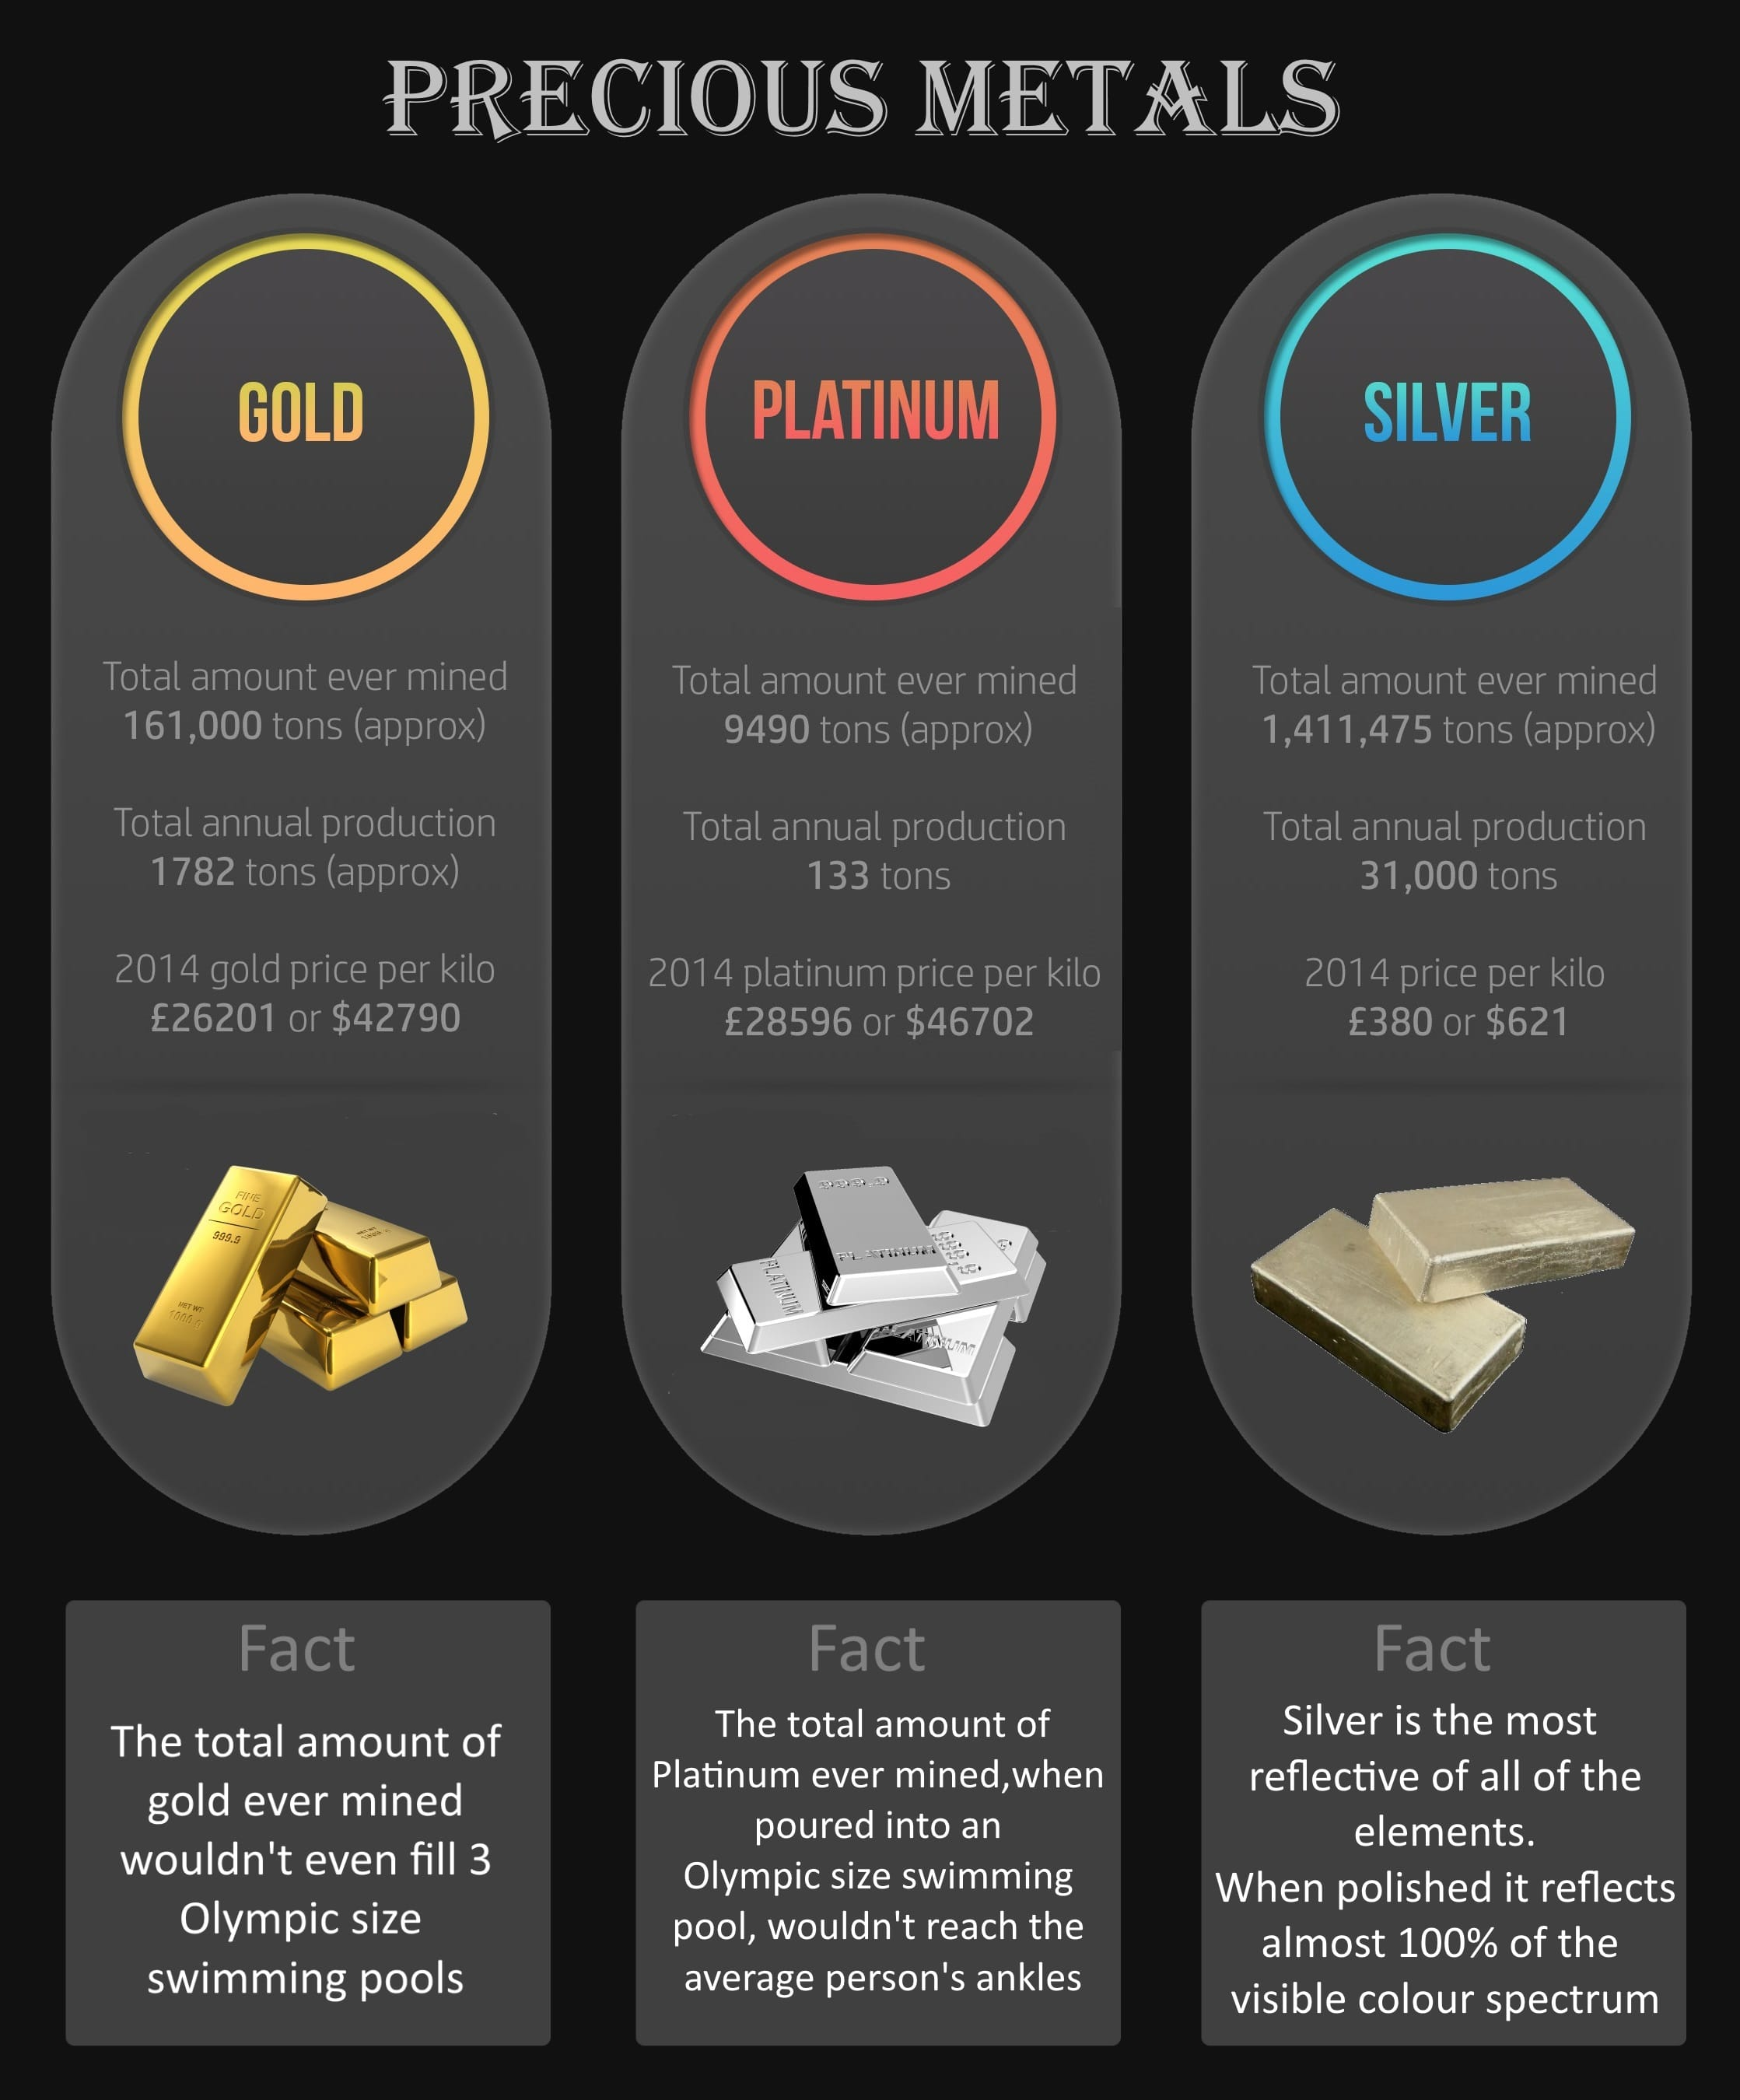 Precious Metals - Top Facts About Gold, Silver and Platinum